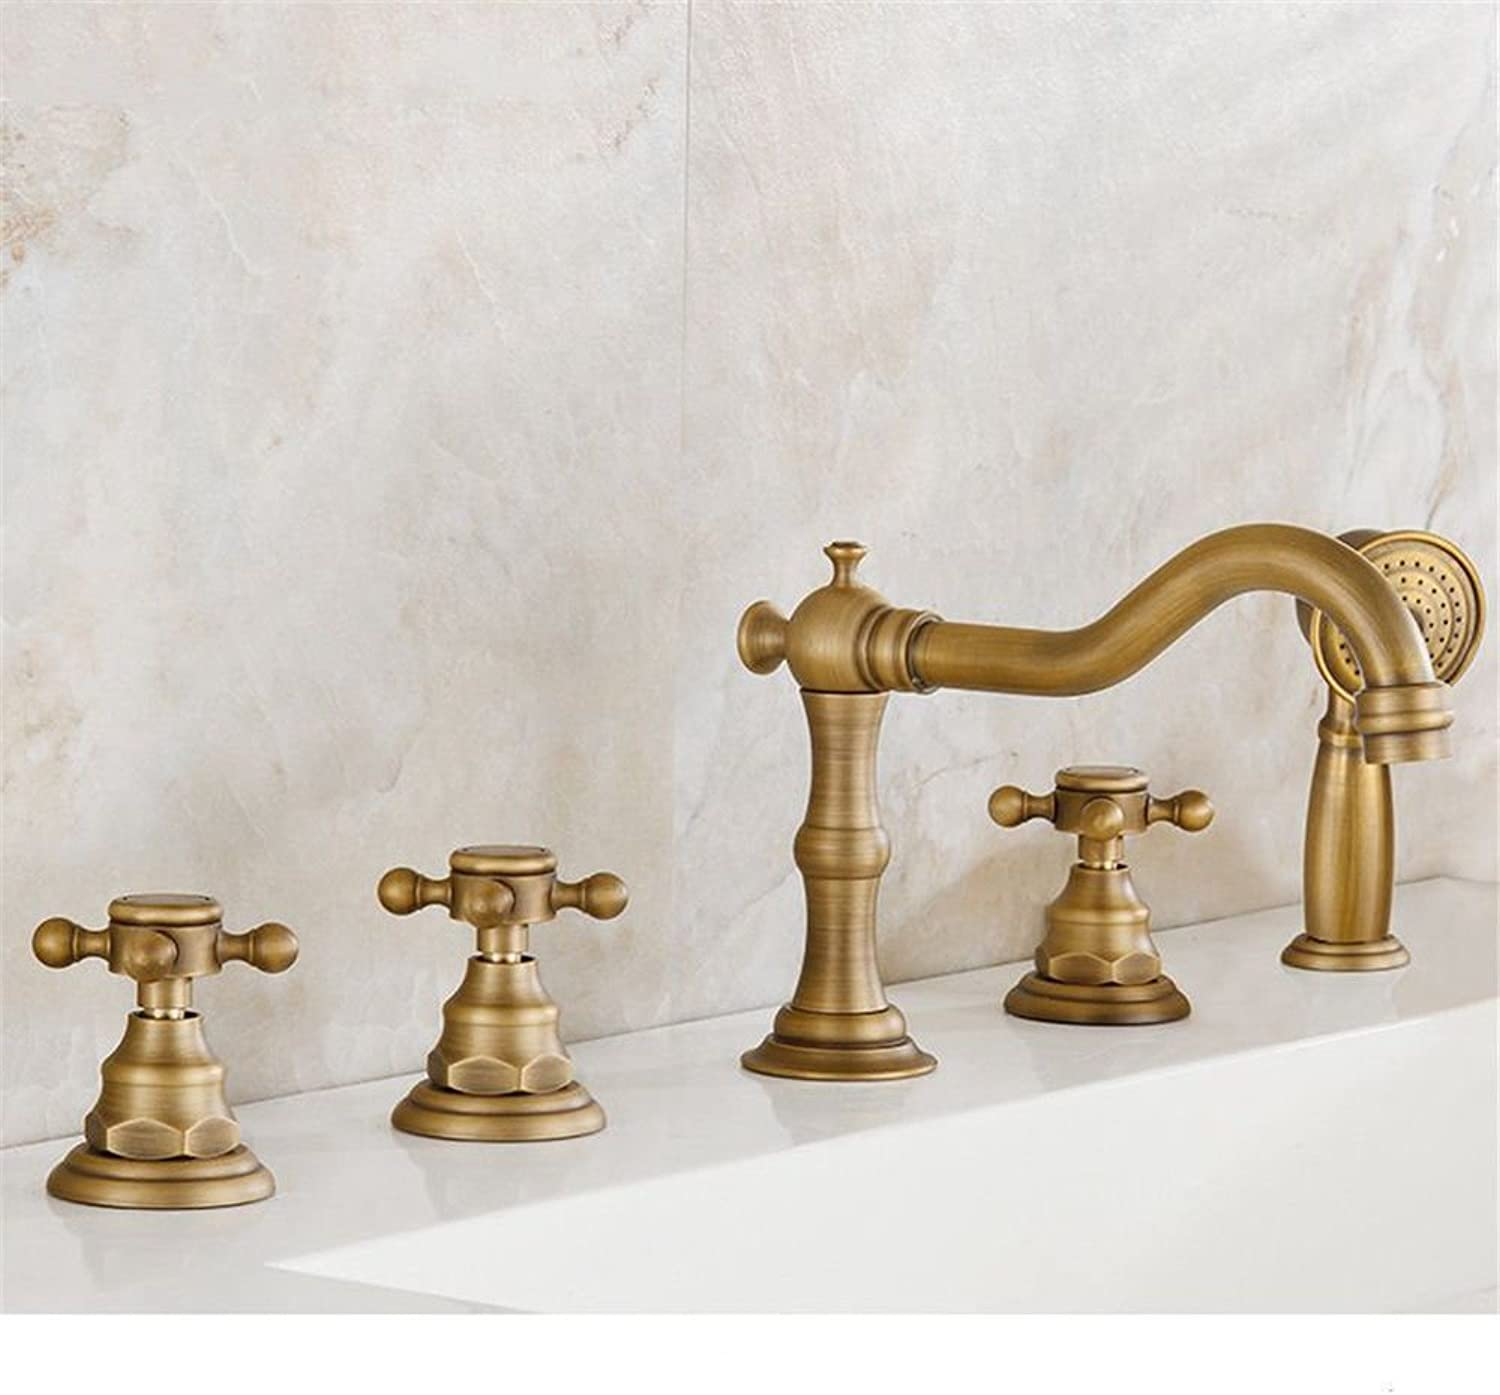 NewBorn Faucet Kitchen Or Bathroom Sink Mixer Tap All Copper Antique Bath Water Tap Three Five-Piece Shower Tub And Cold Water Taps A